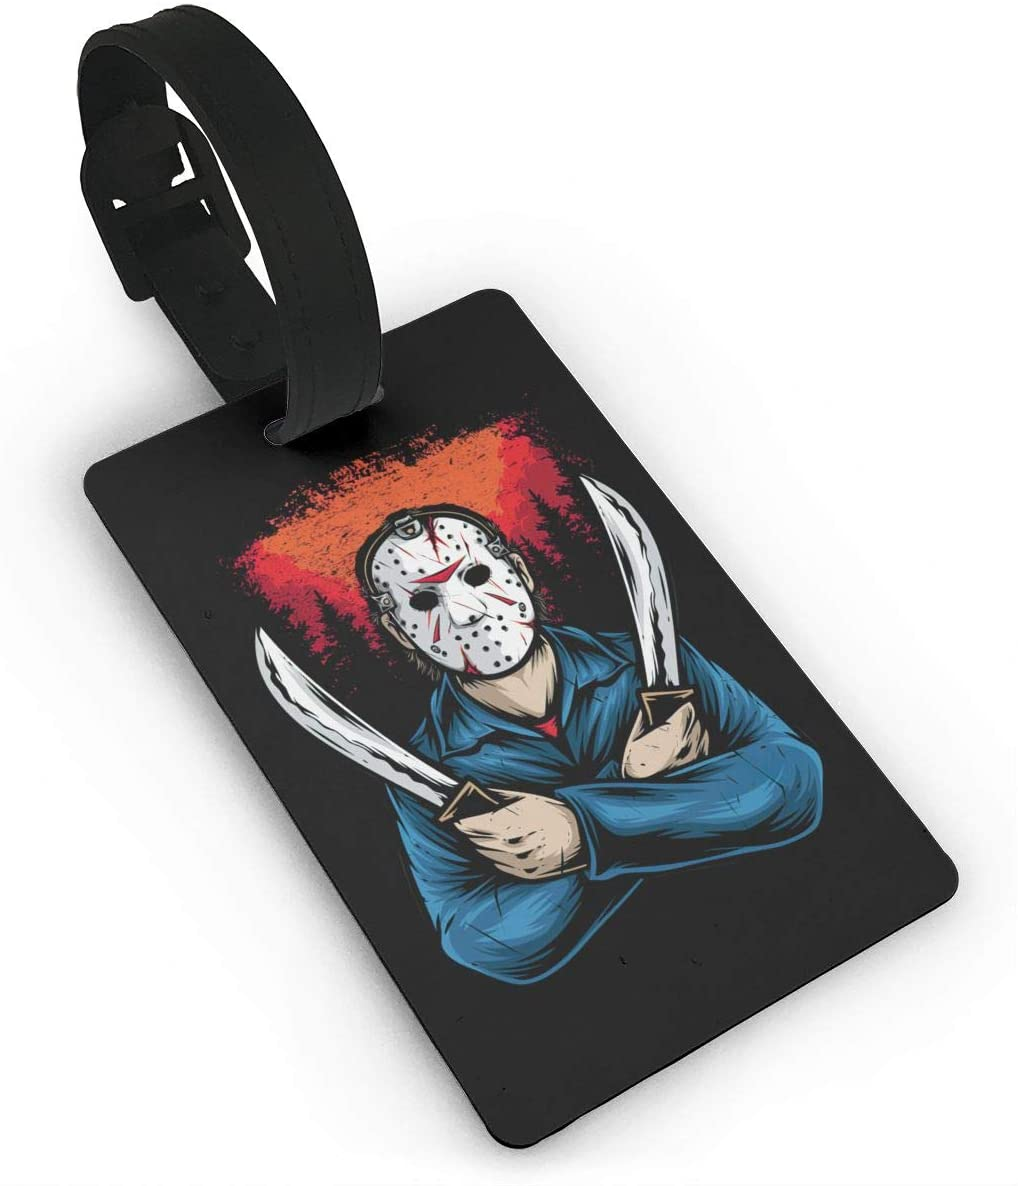 Jason Voorhees Luggage Tag, Used To Prevent Luggage From Being Lost And Messy, And Equipped With A Detachable Wrist Strap For Easy Hanging